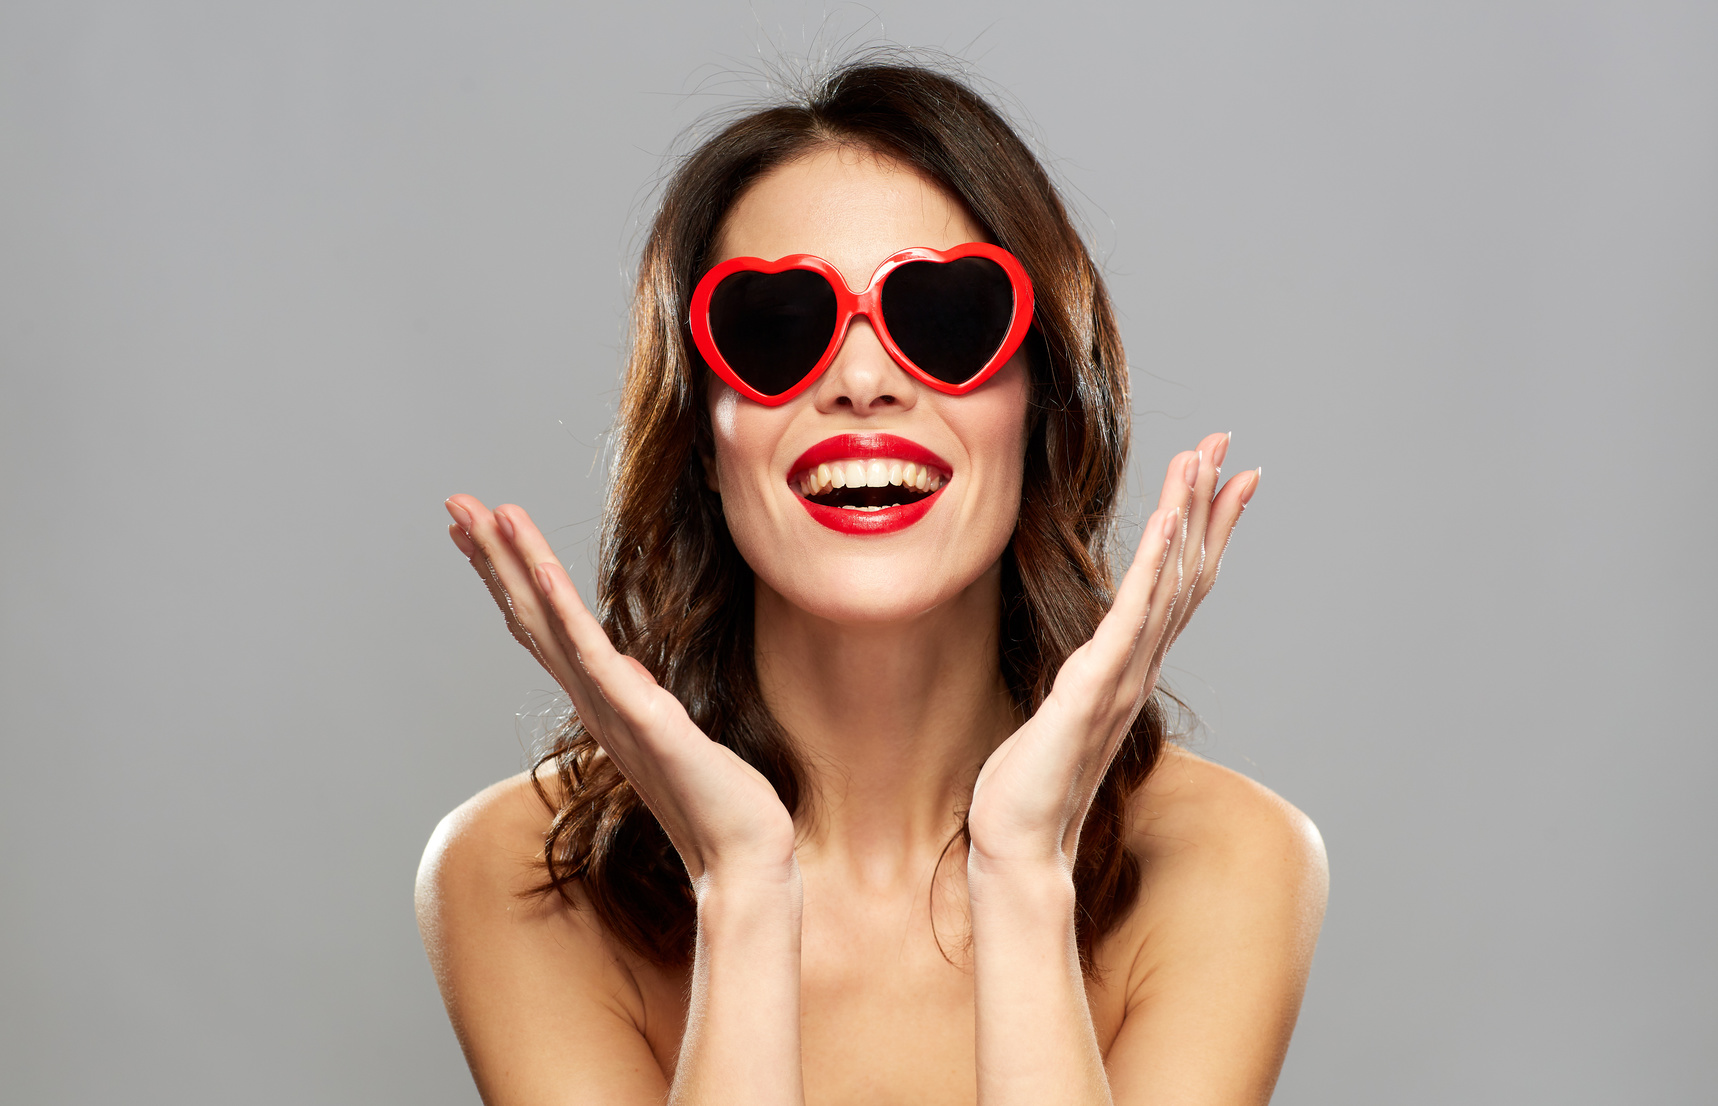 valentines day, beauty and people concept - happy smiling young woman with red lipstick and heart shaped sunglasses over gray background